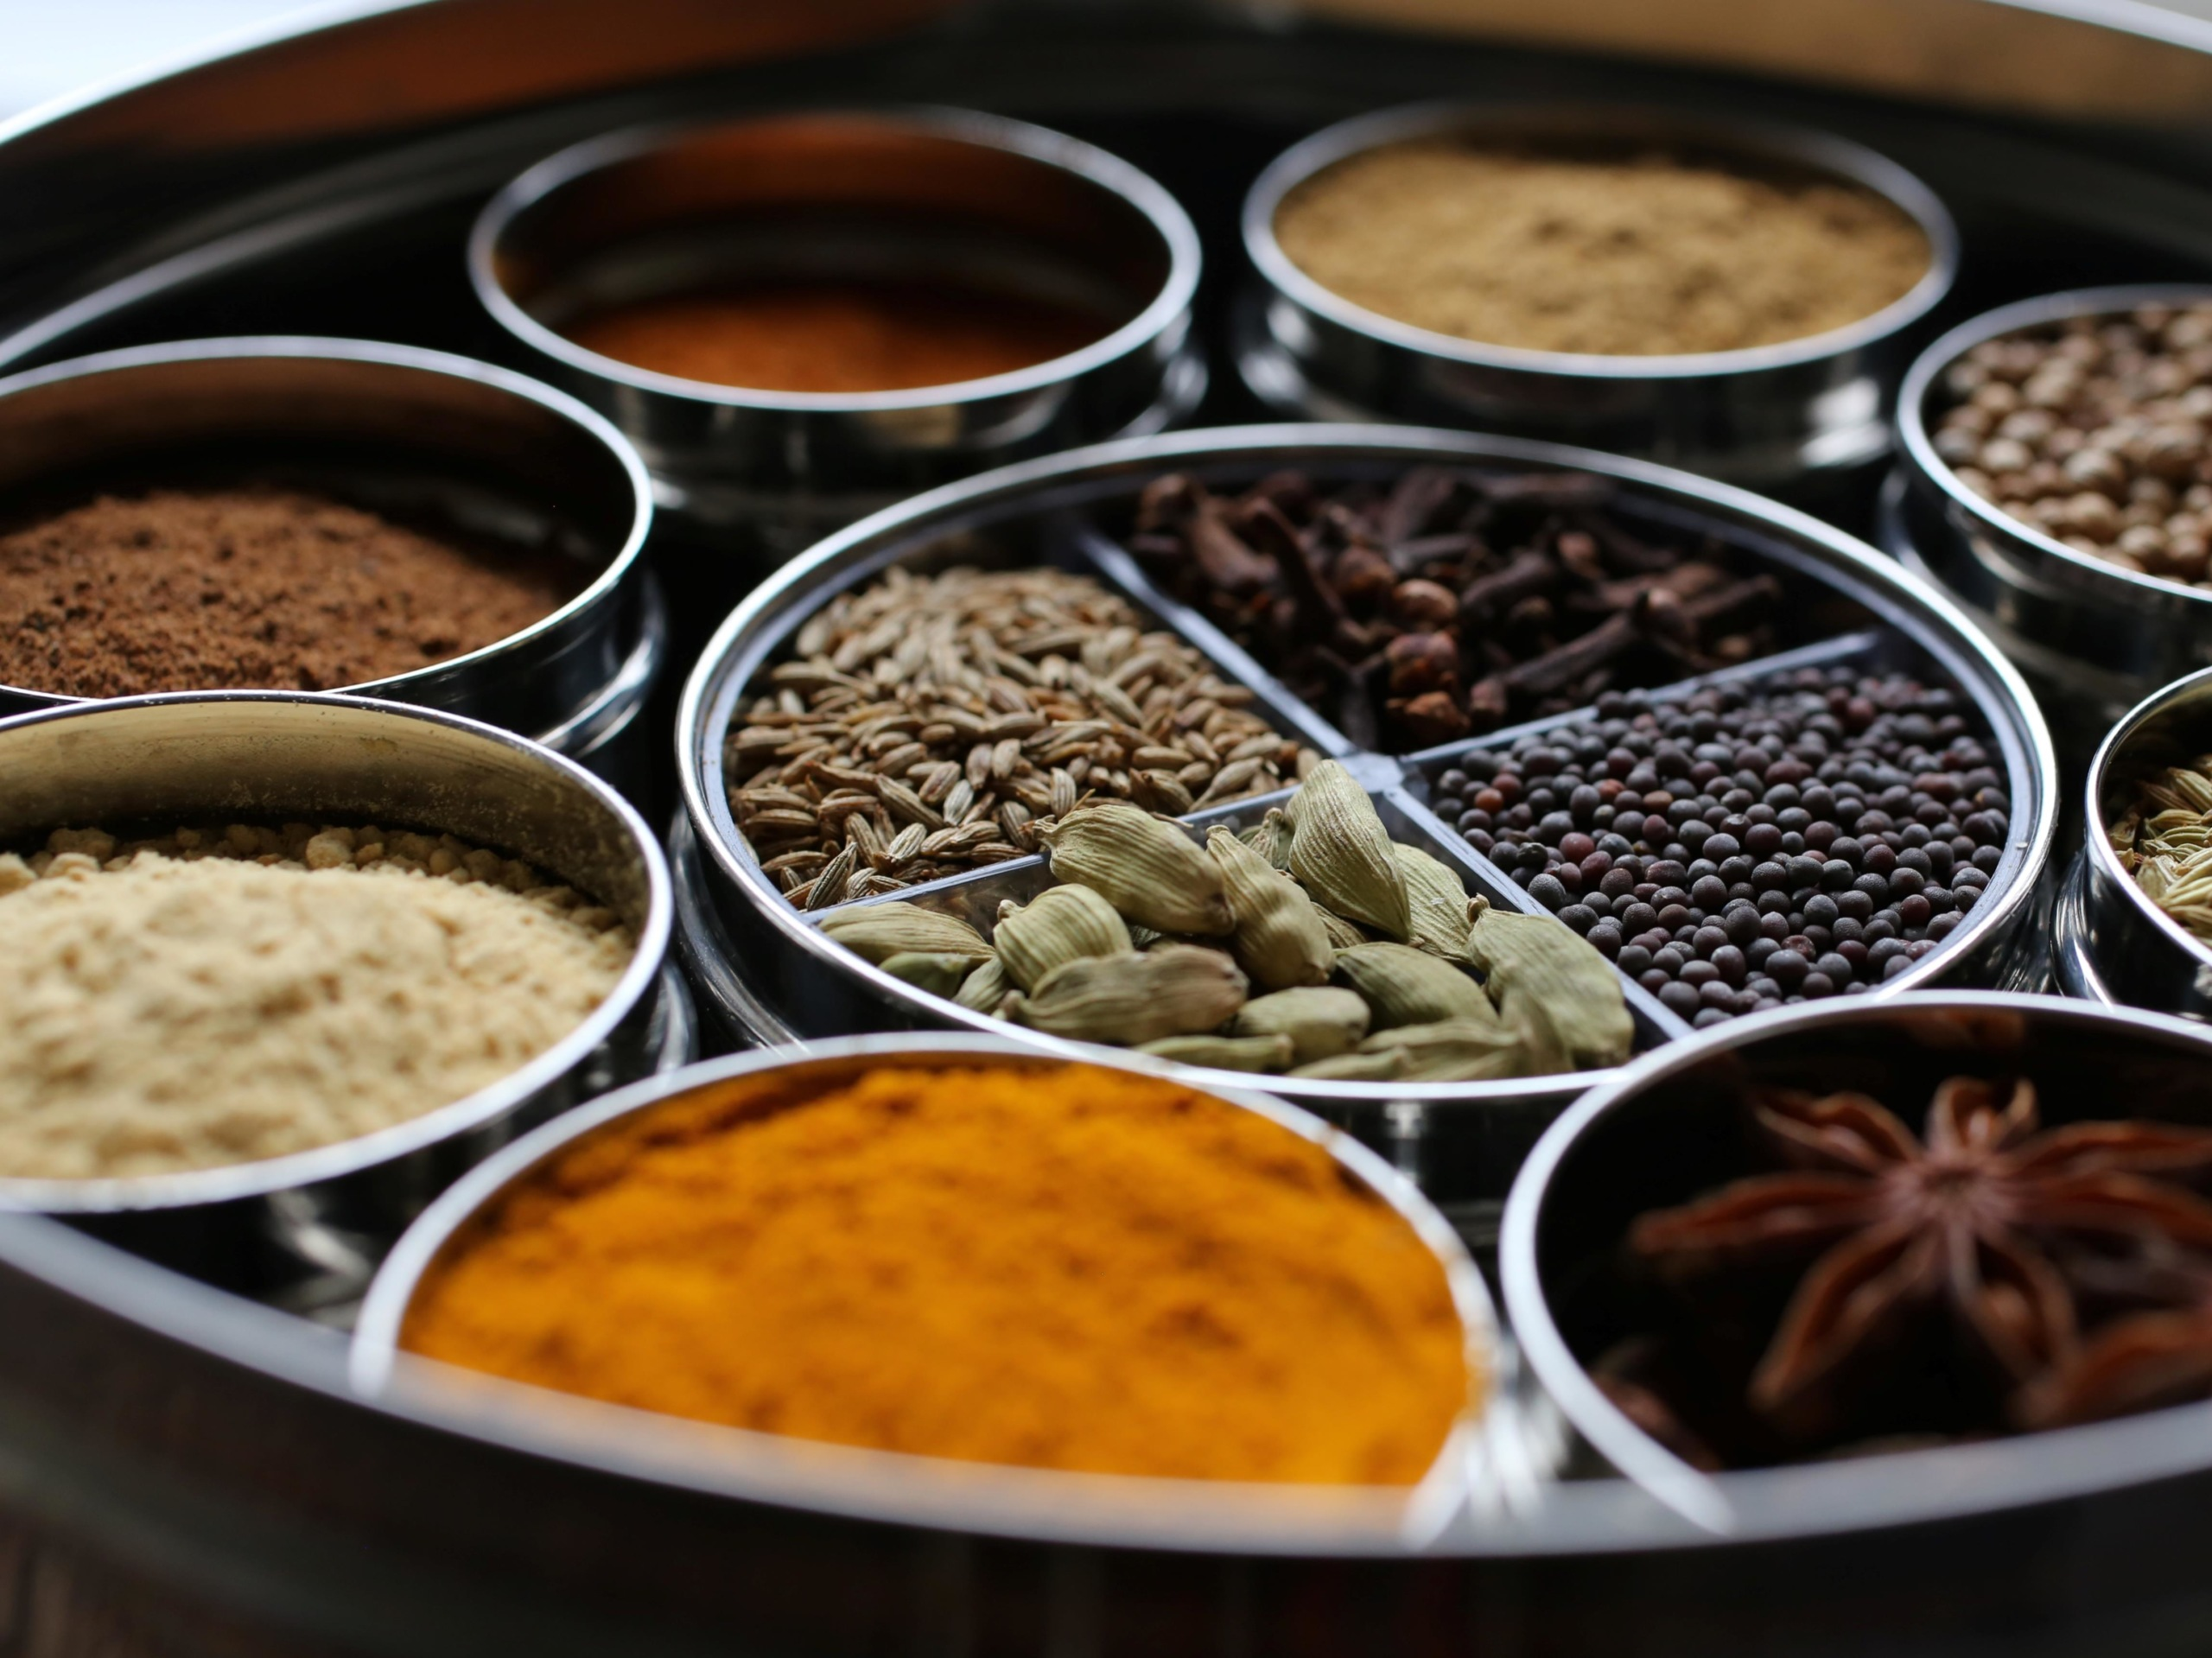 a spice tin filled with ground and whole spices